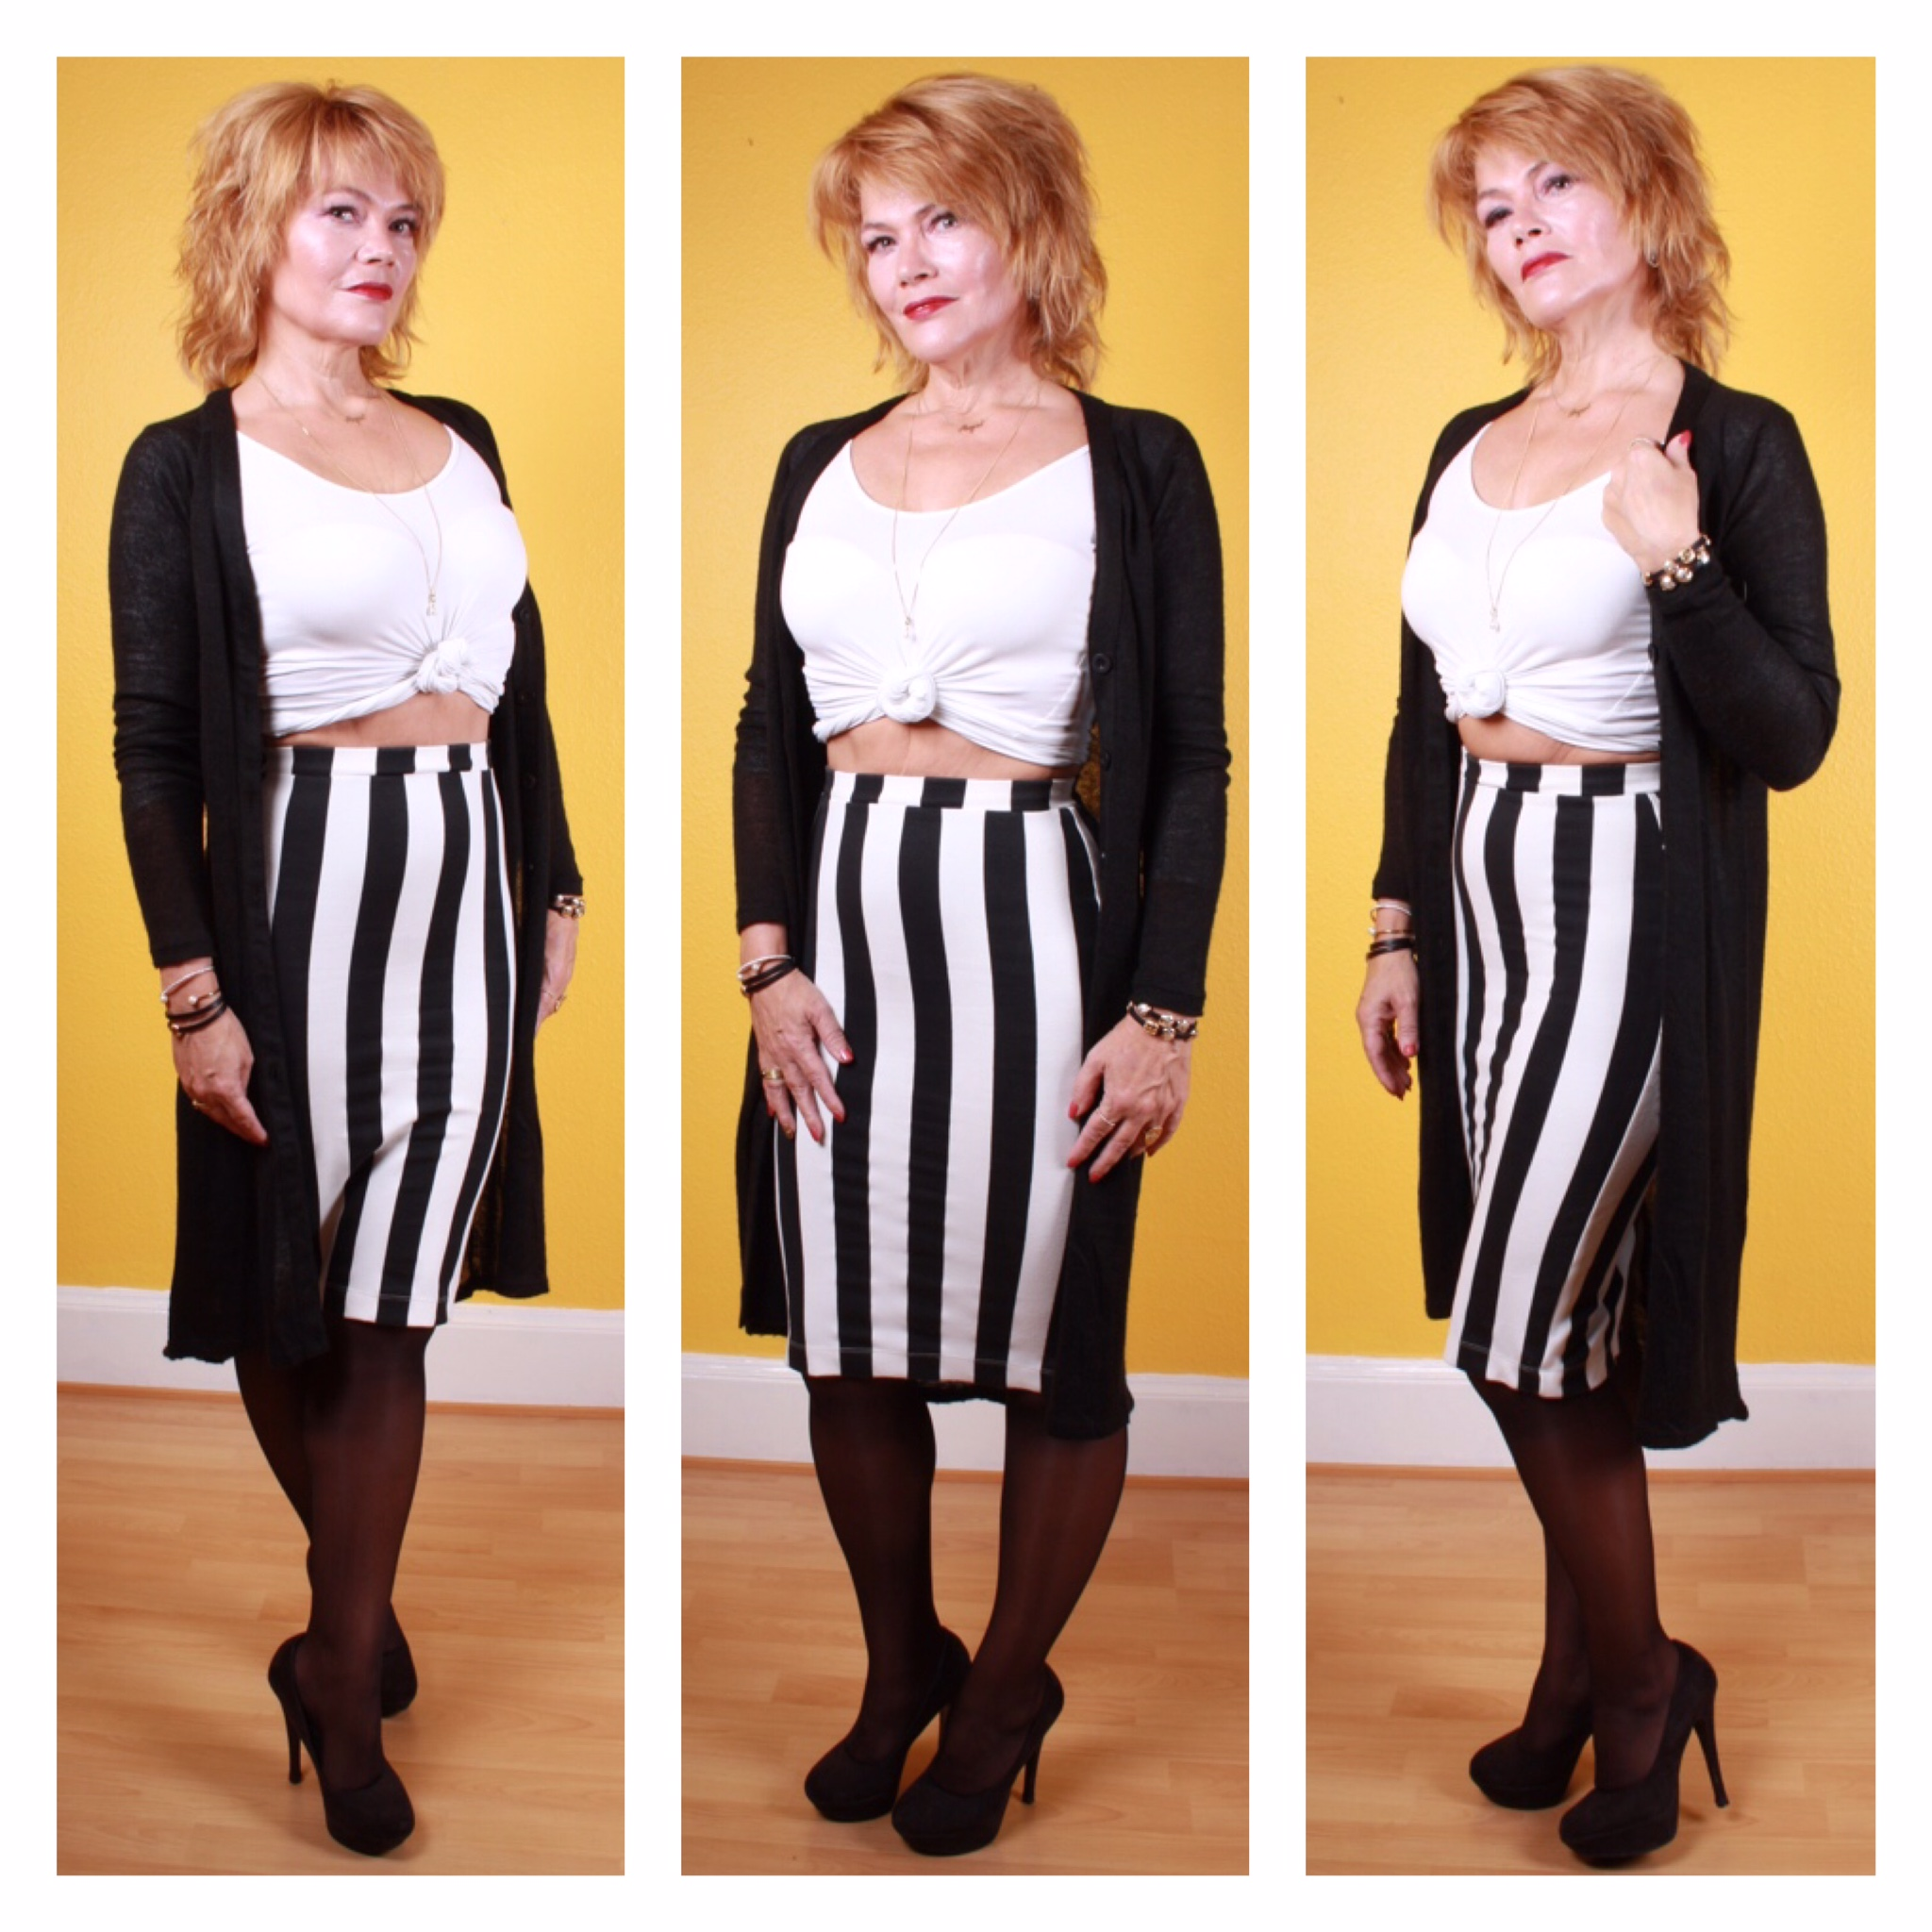 Striped Compliments2